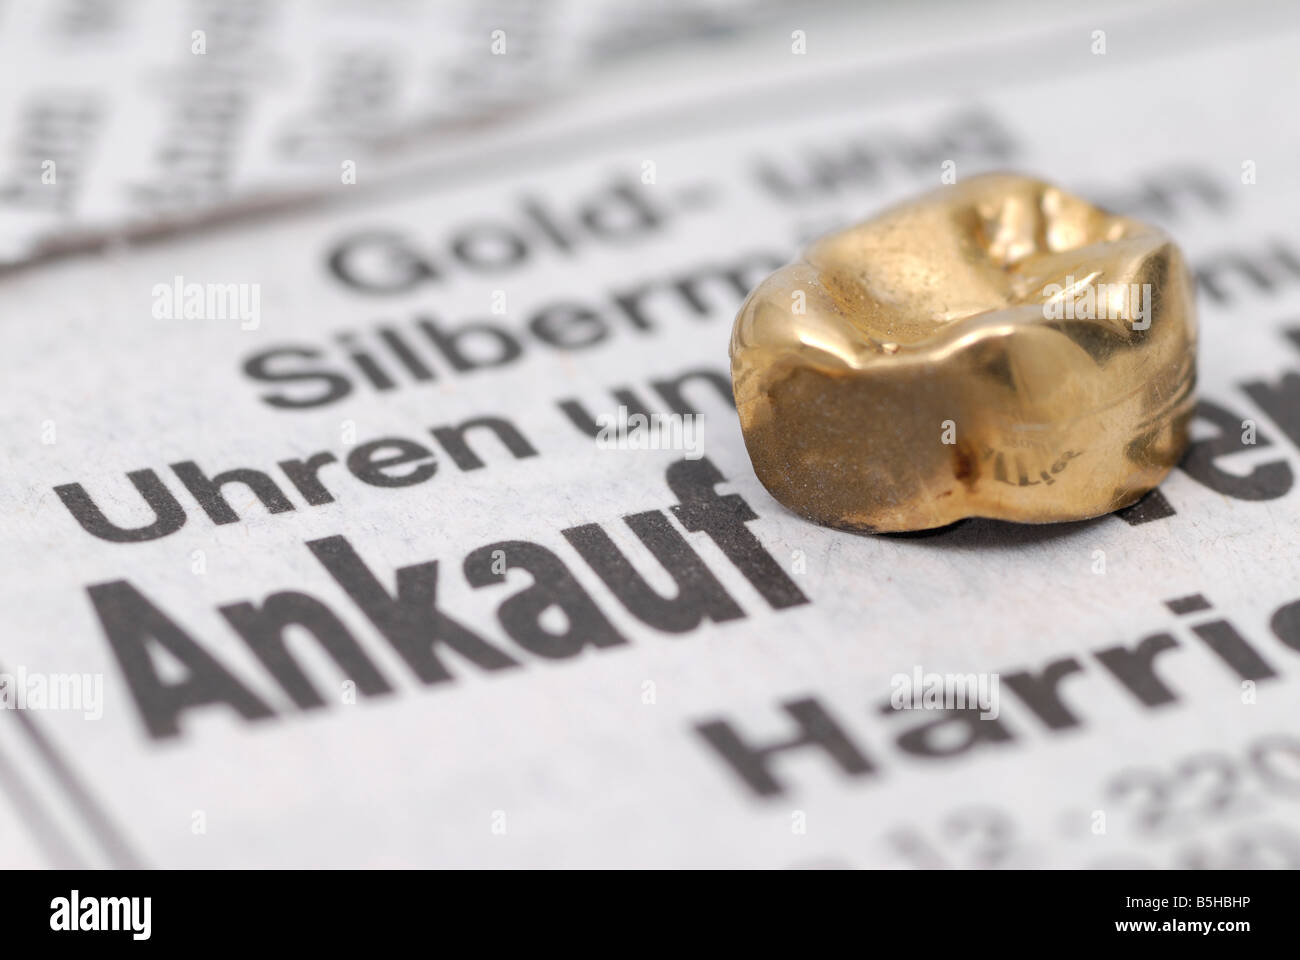 purchase of dental gold - Stock Image